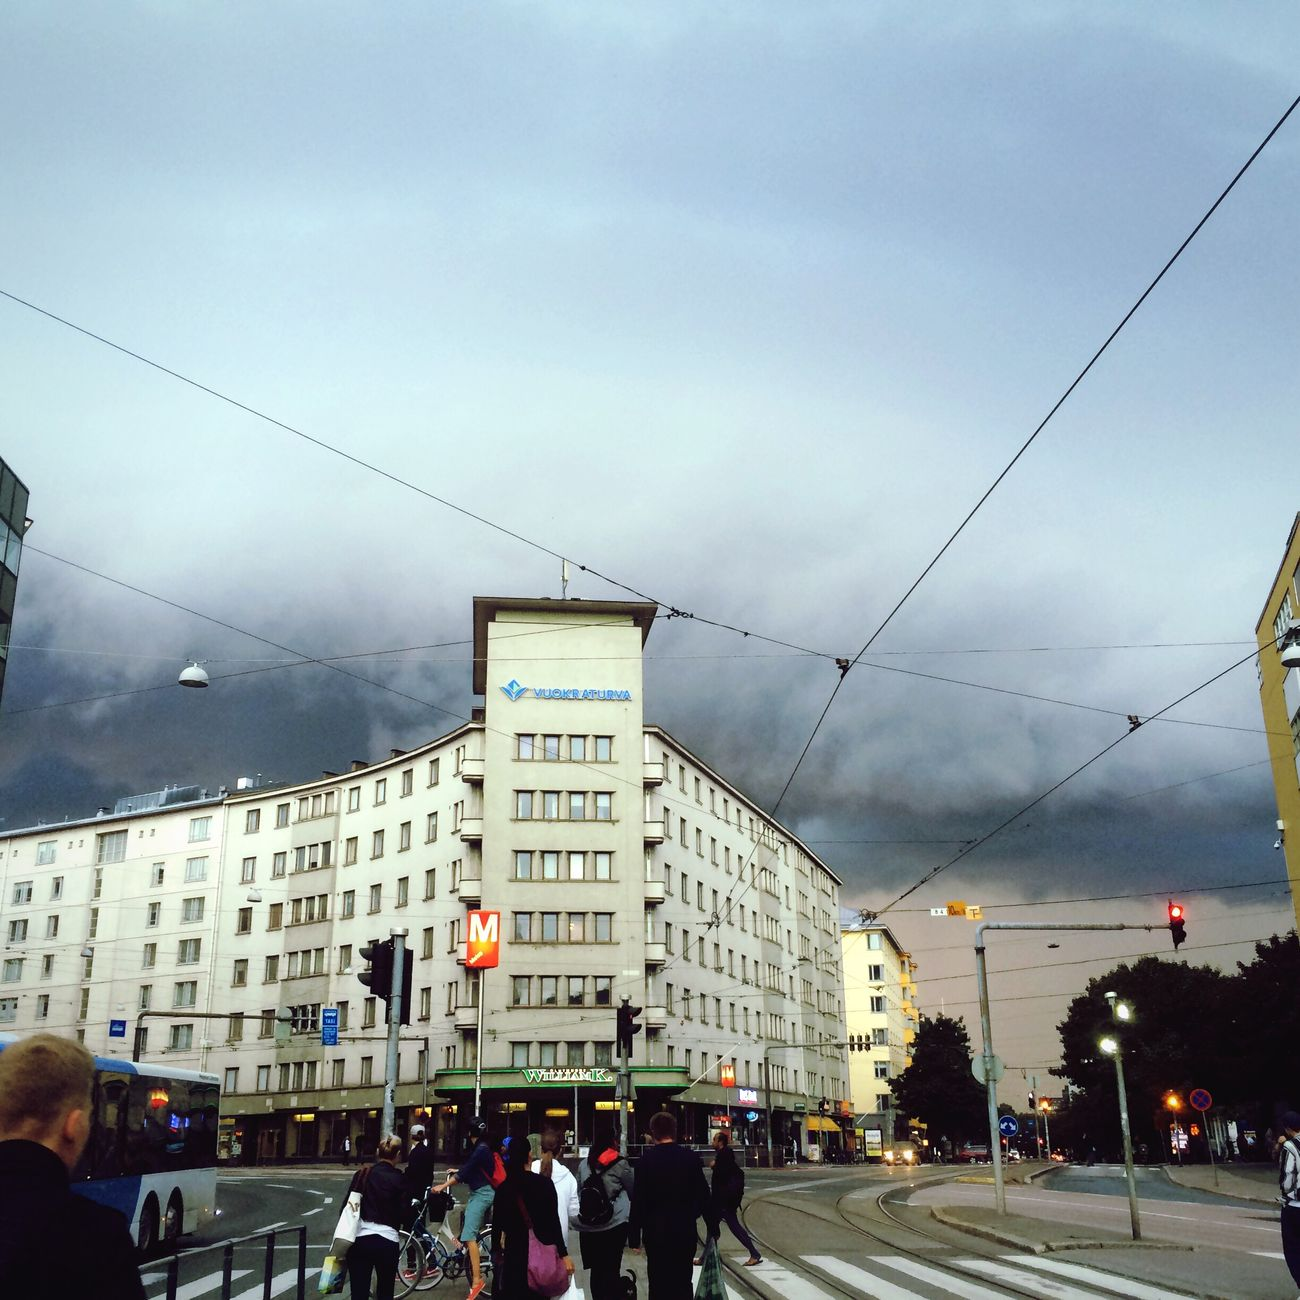 There was some very scary clouds in Helsinki, last week... Cloudy Sky Cloudy Scary Weather Scary Awesome Exciting Weather Helsinki Sörnäinen Finland Metro Station